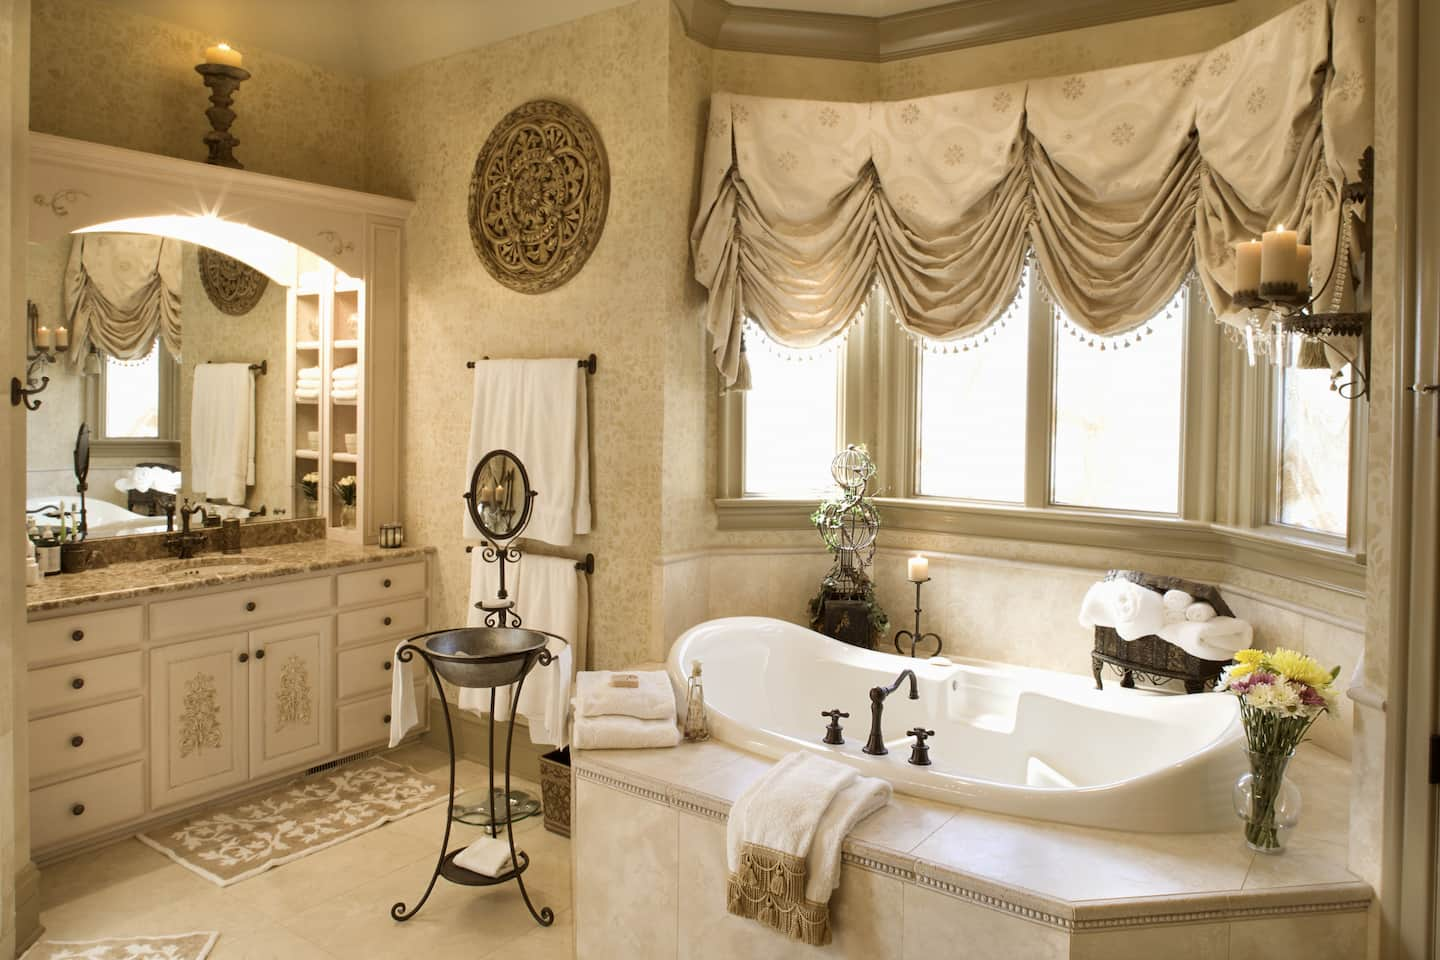 12 sensational bathroom cabinet design ideas angie s list a luxury bathroom with built in cabinets